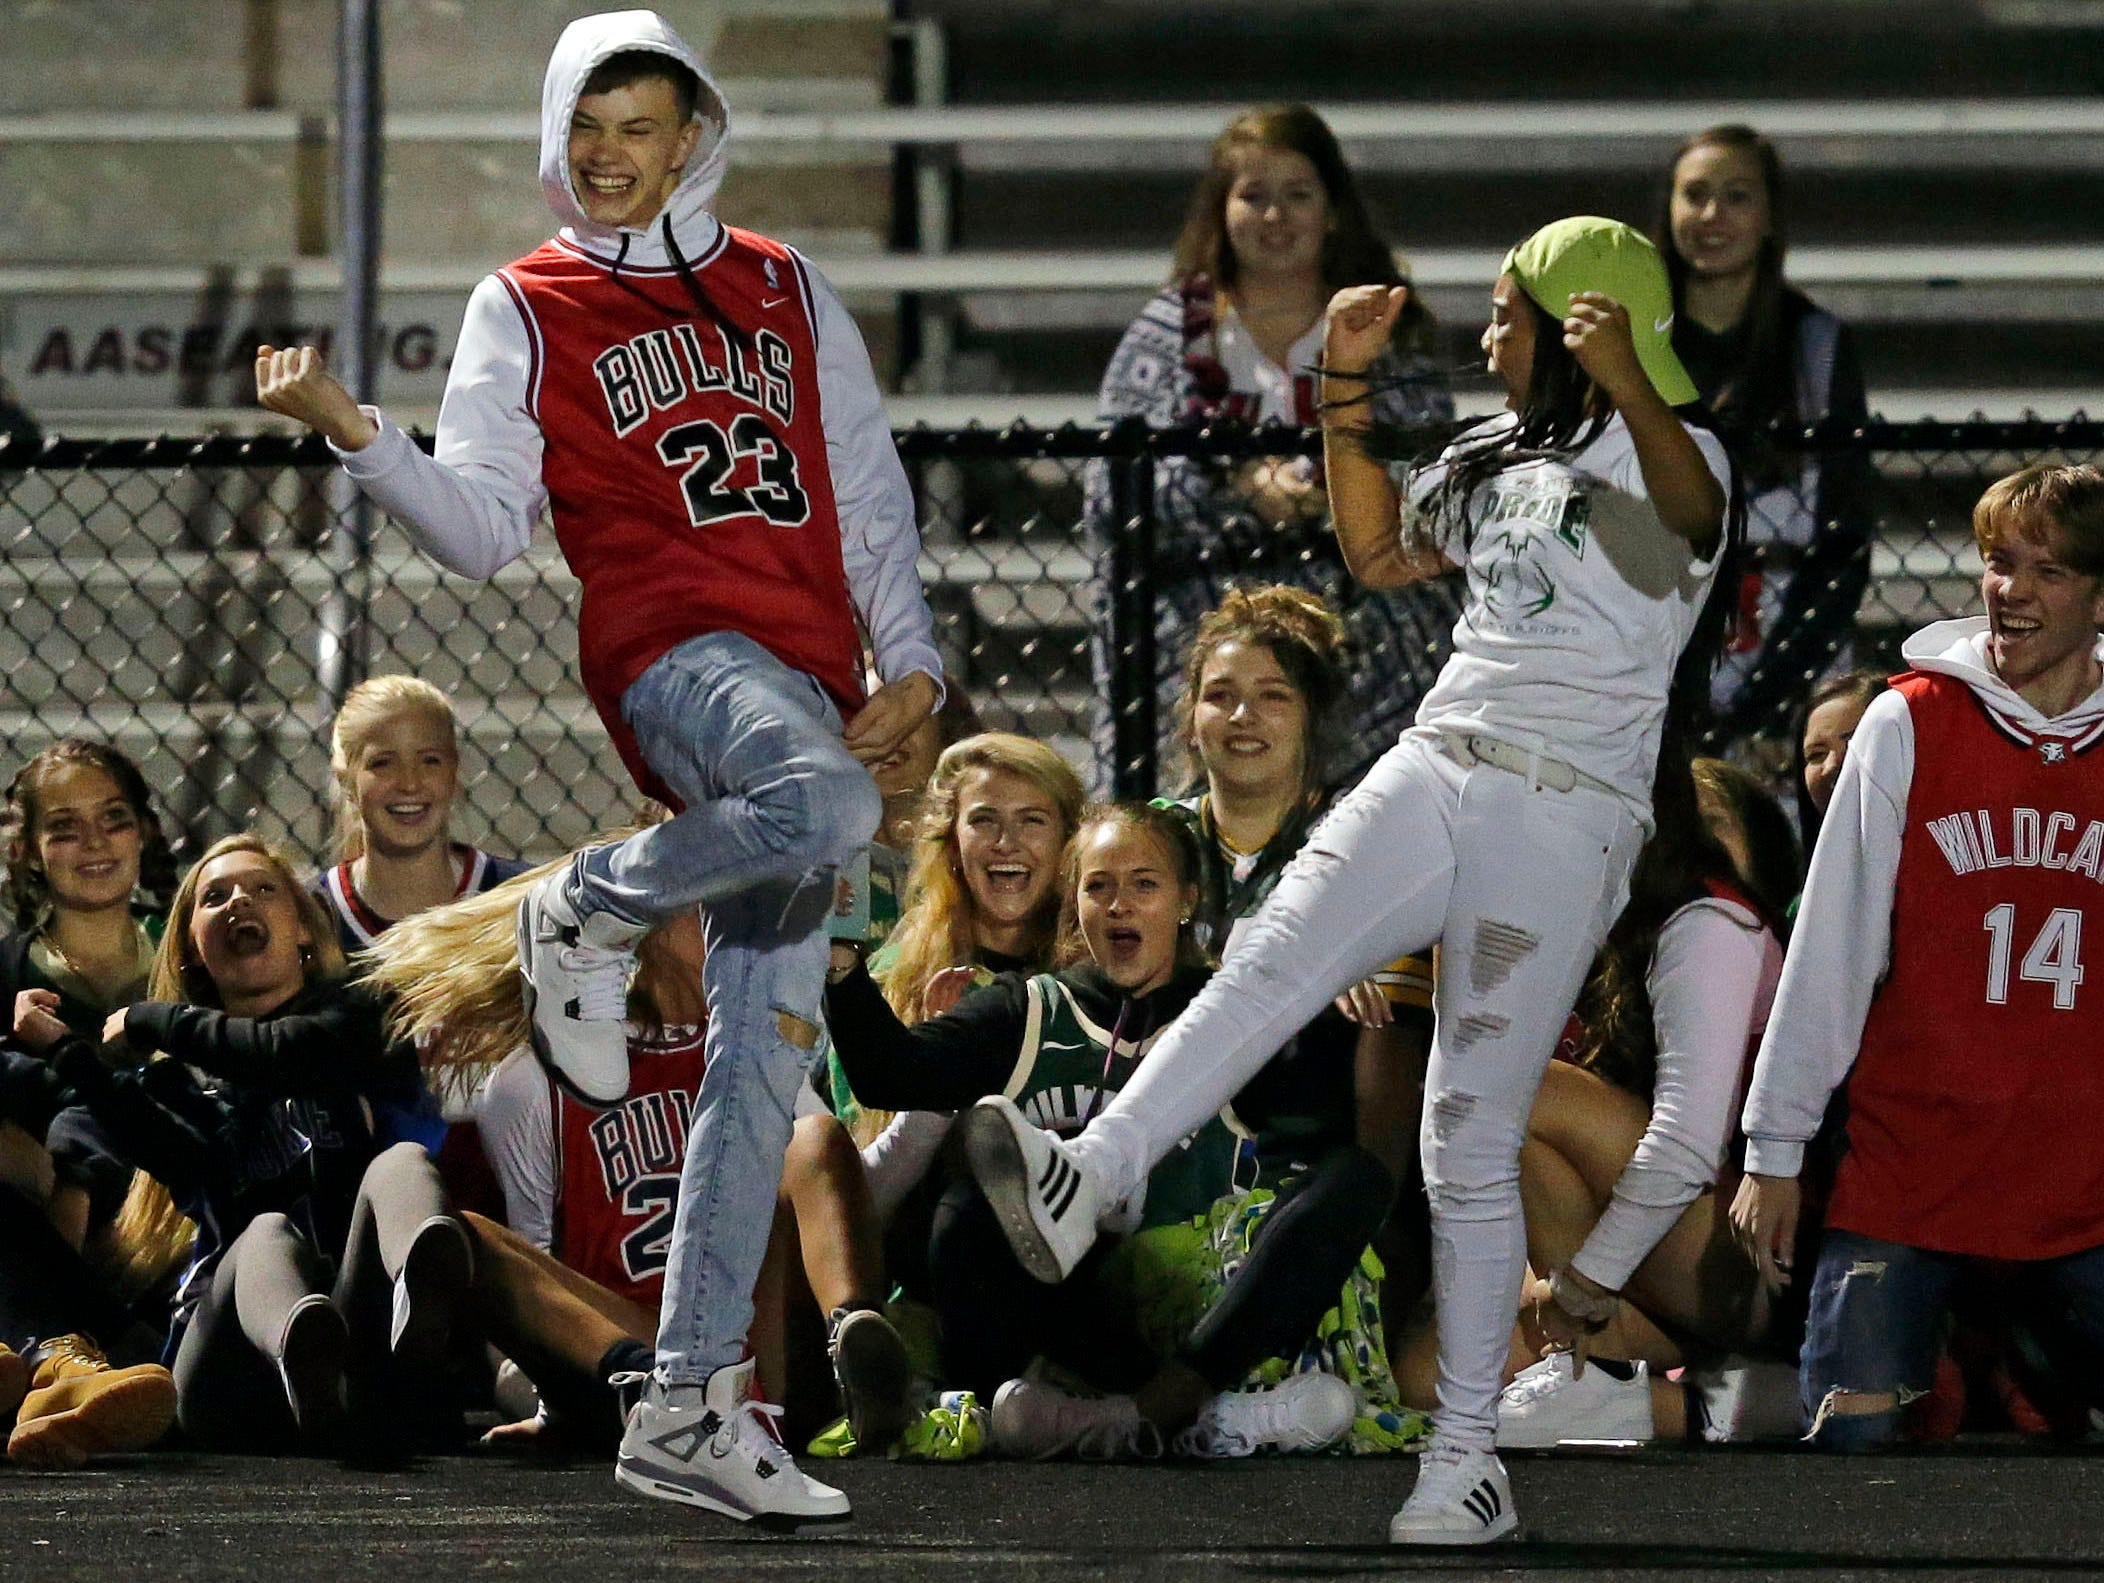 Student entertain themselves at the half as Oshkosh North takes on Appleton West in a Valley Football Association game Friday, September 7, 2018, at Appleton West High School in Appleton, Wis.